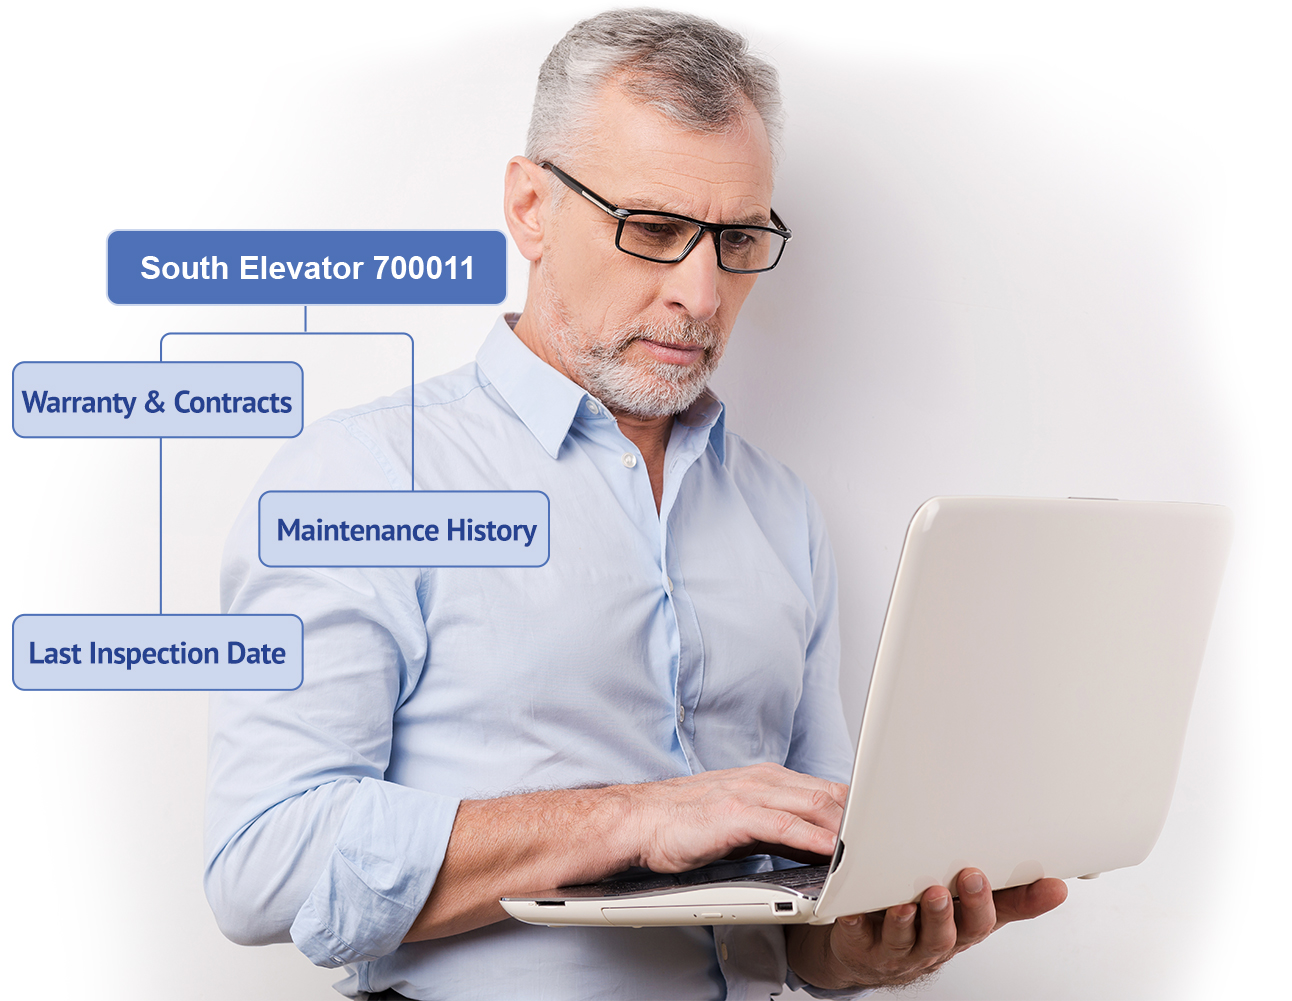 chief engineer using laptop to view hotel CMMS asset and documents